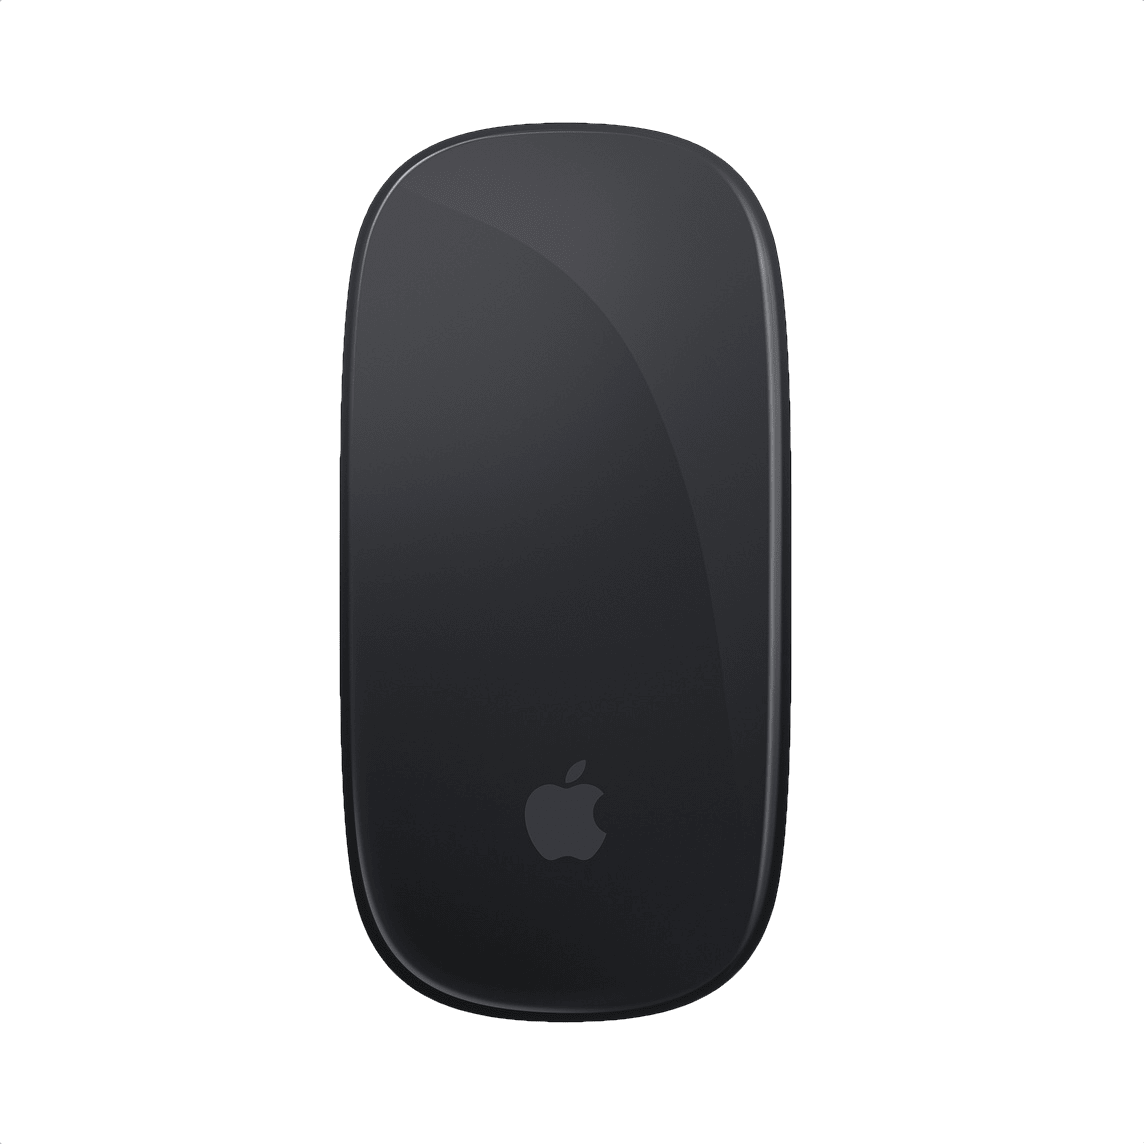 Space Grey Apple Magic Mouse 2.1